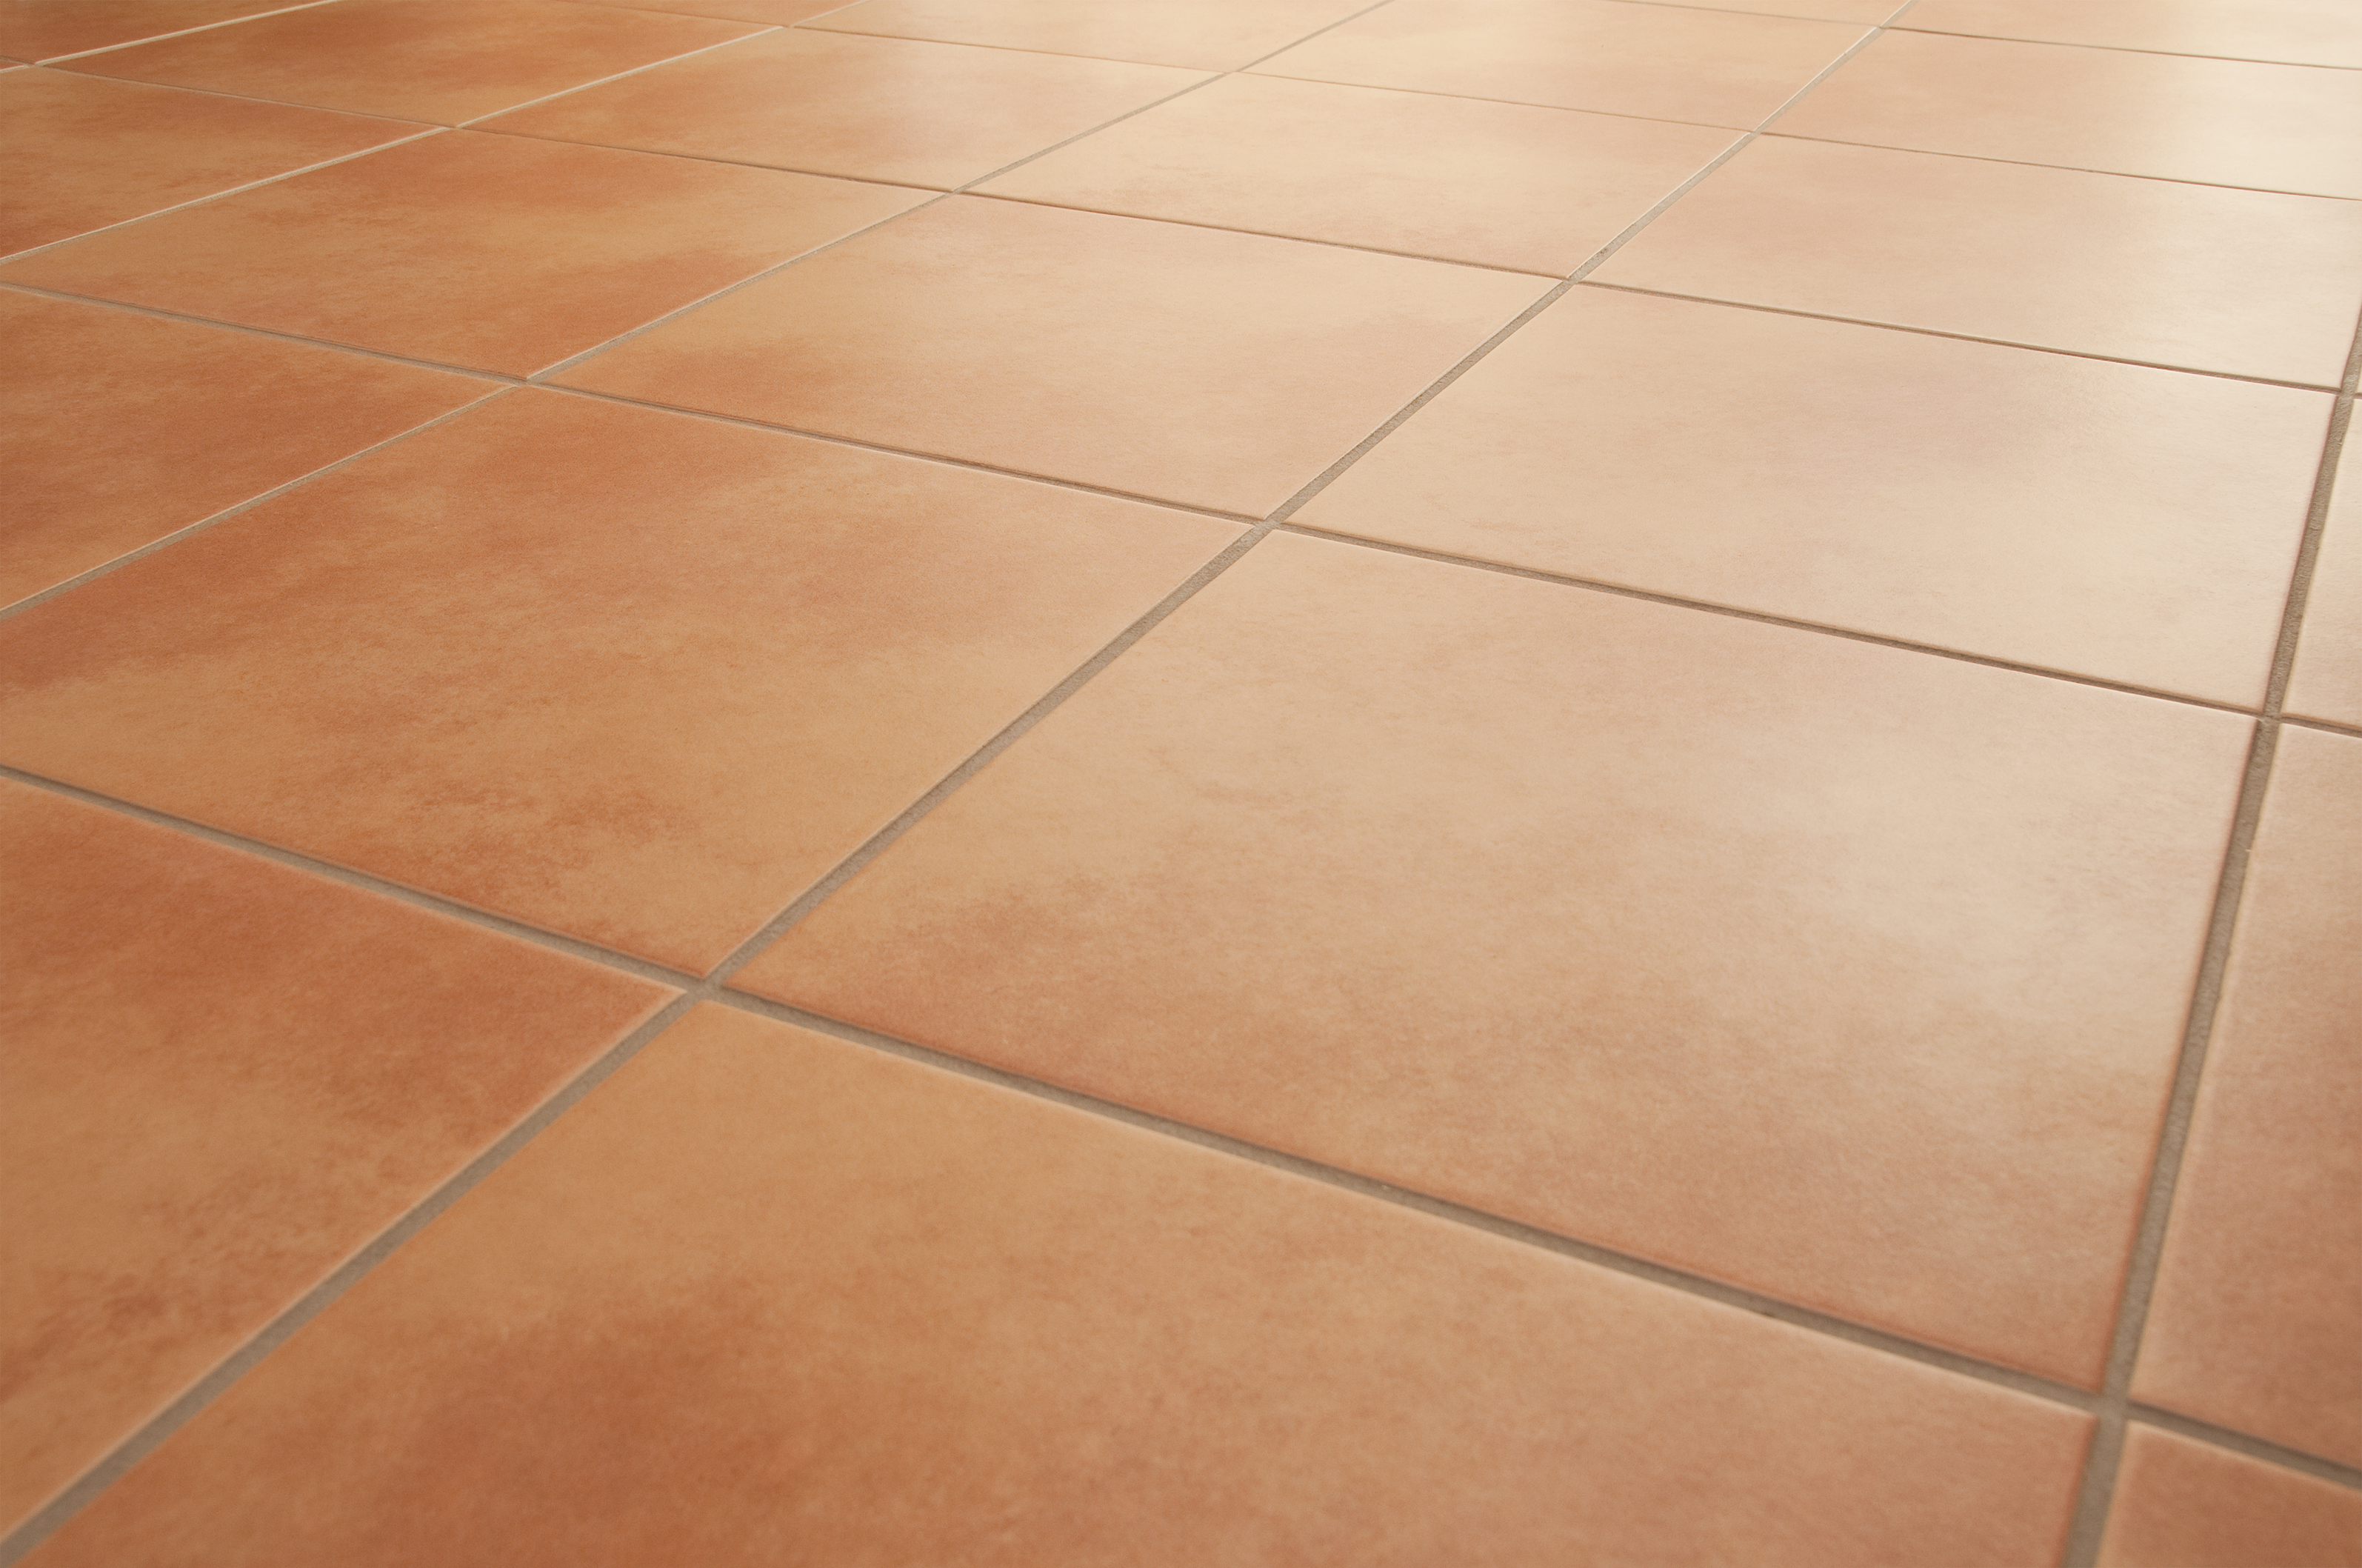 How to Clean Terra-Cotta Floor Tile | Hunker